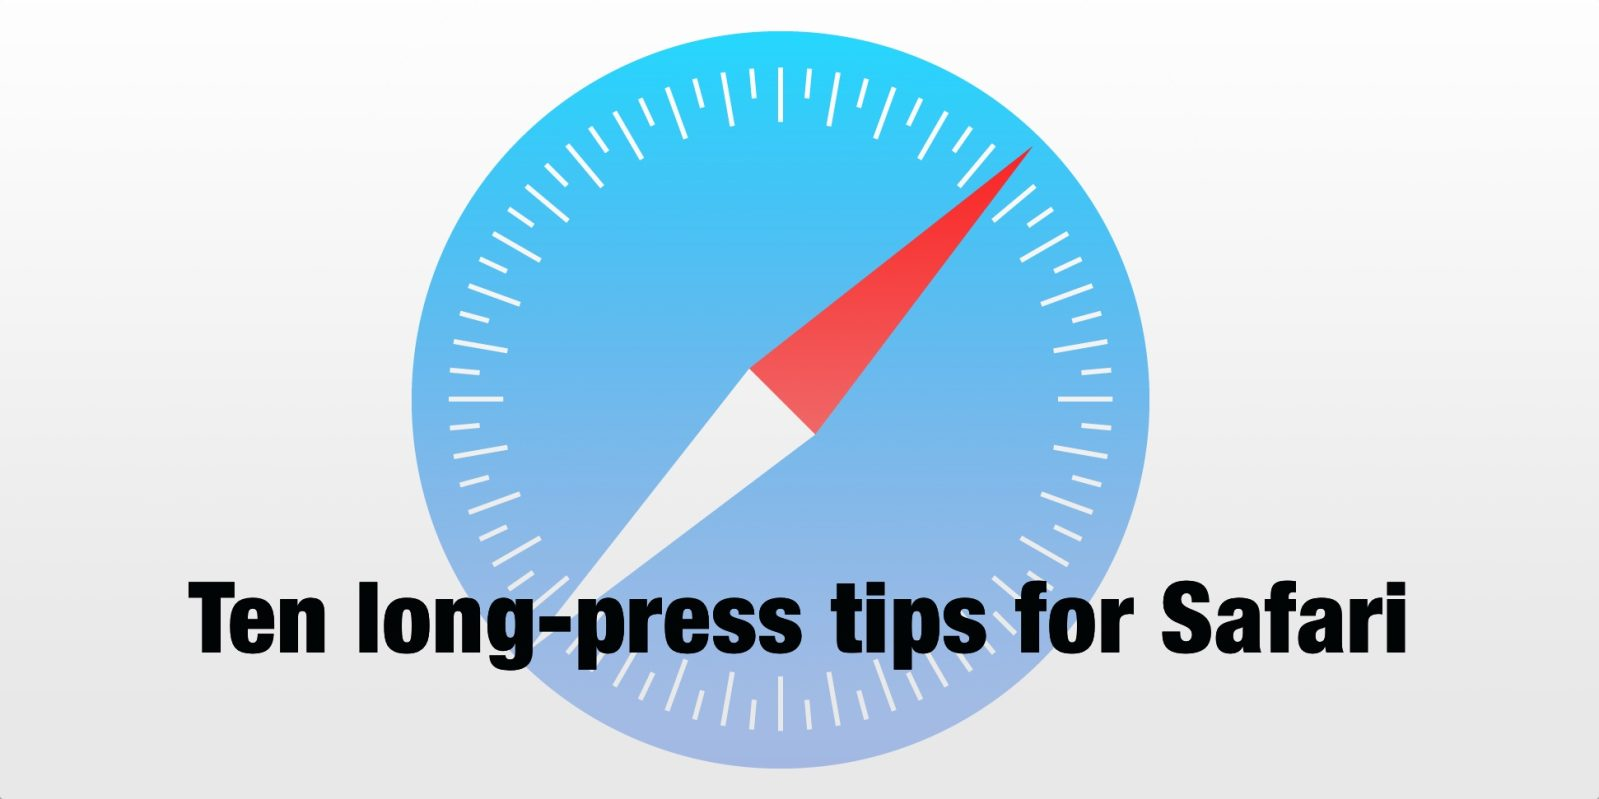 Tips and Tricks: Ten Safari long-press shortcuts for iPhone